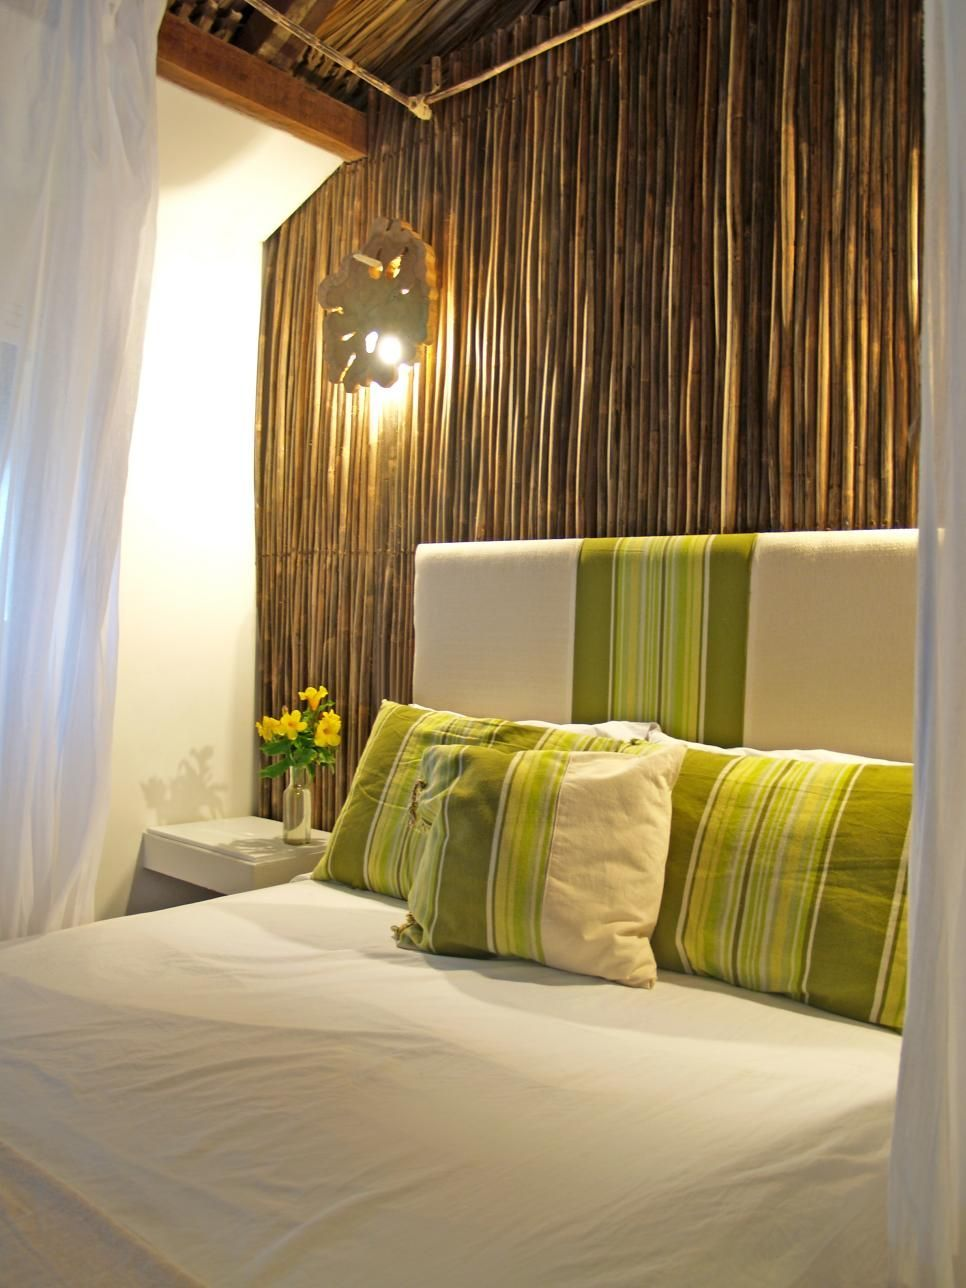 A large bed with coordinating throw pillows and headboard is